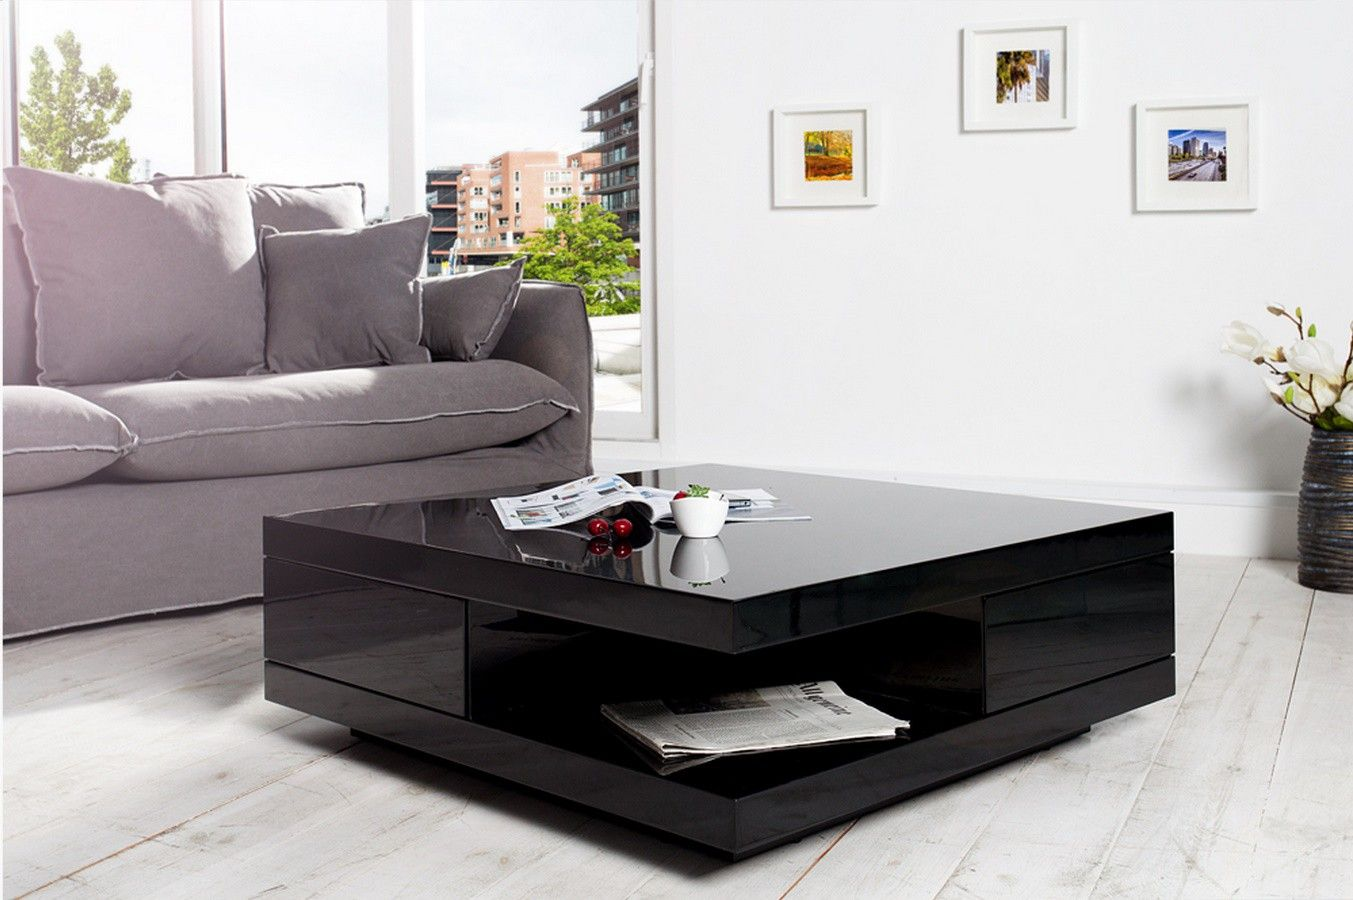 inspirant table basse noire design Home Pinterest